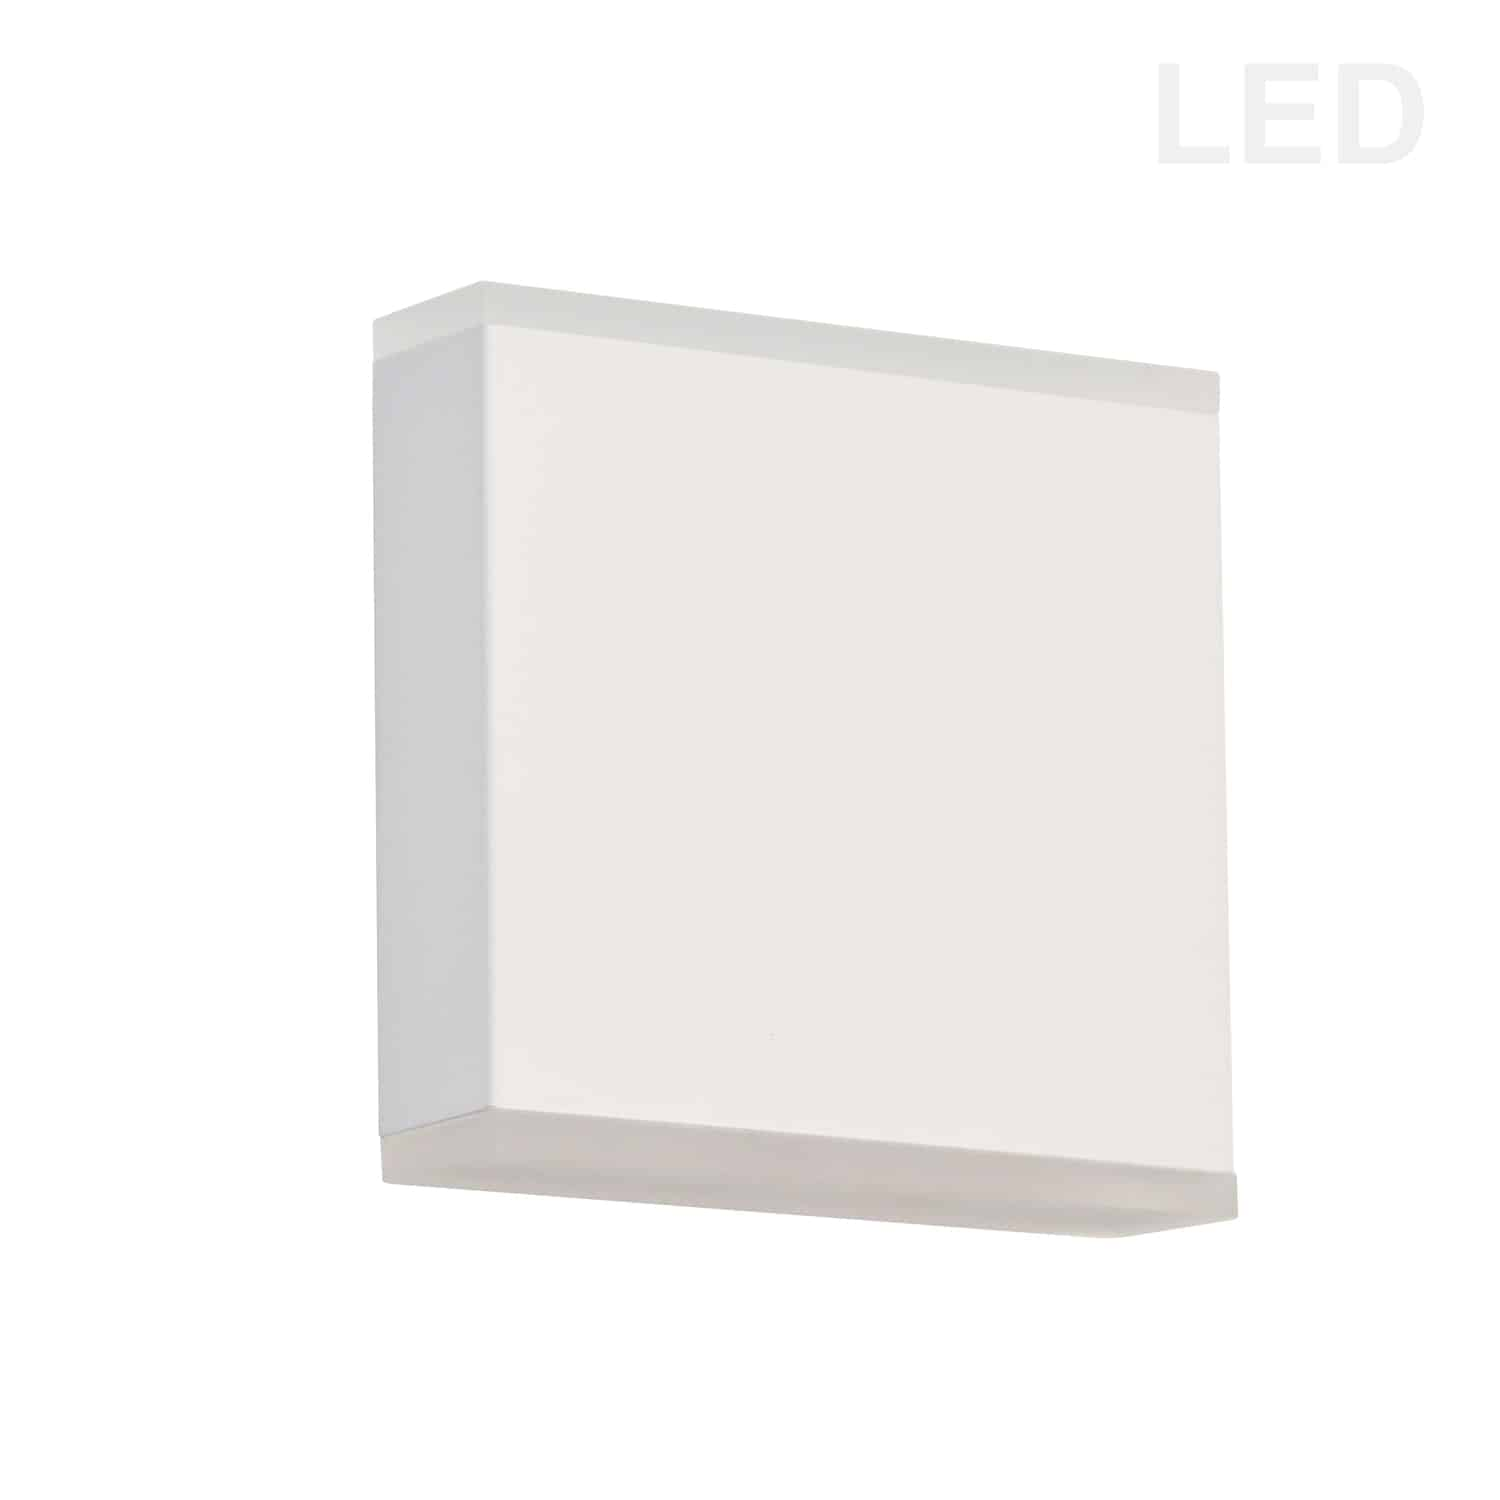 15W LED Wall Sconce, Matte White with Frosted Acrylic Diffuser